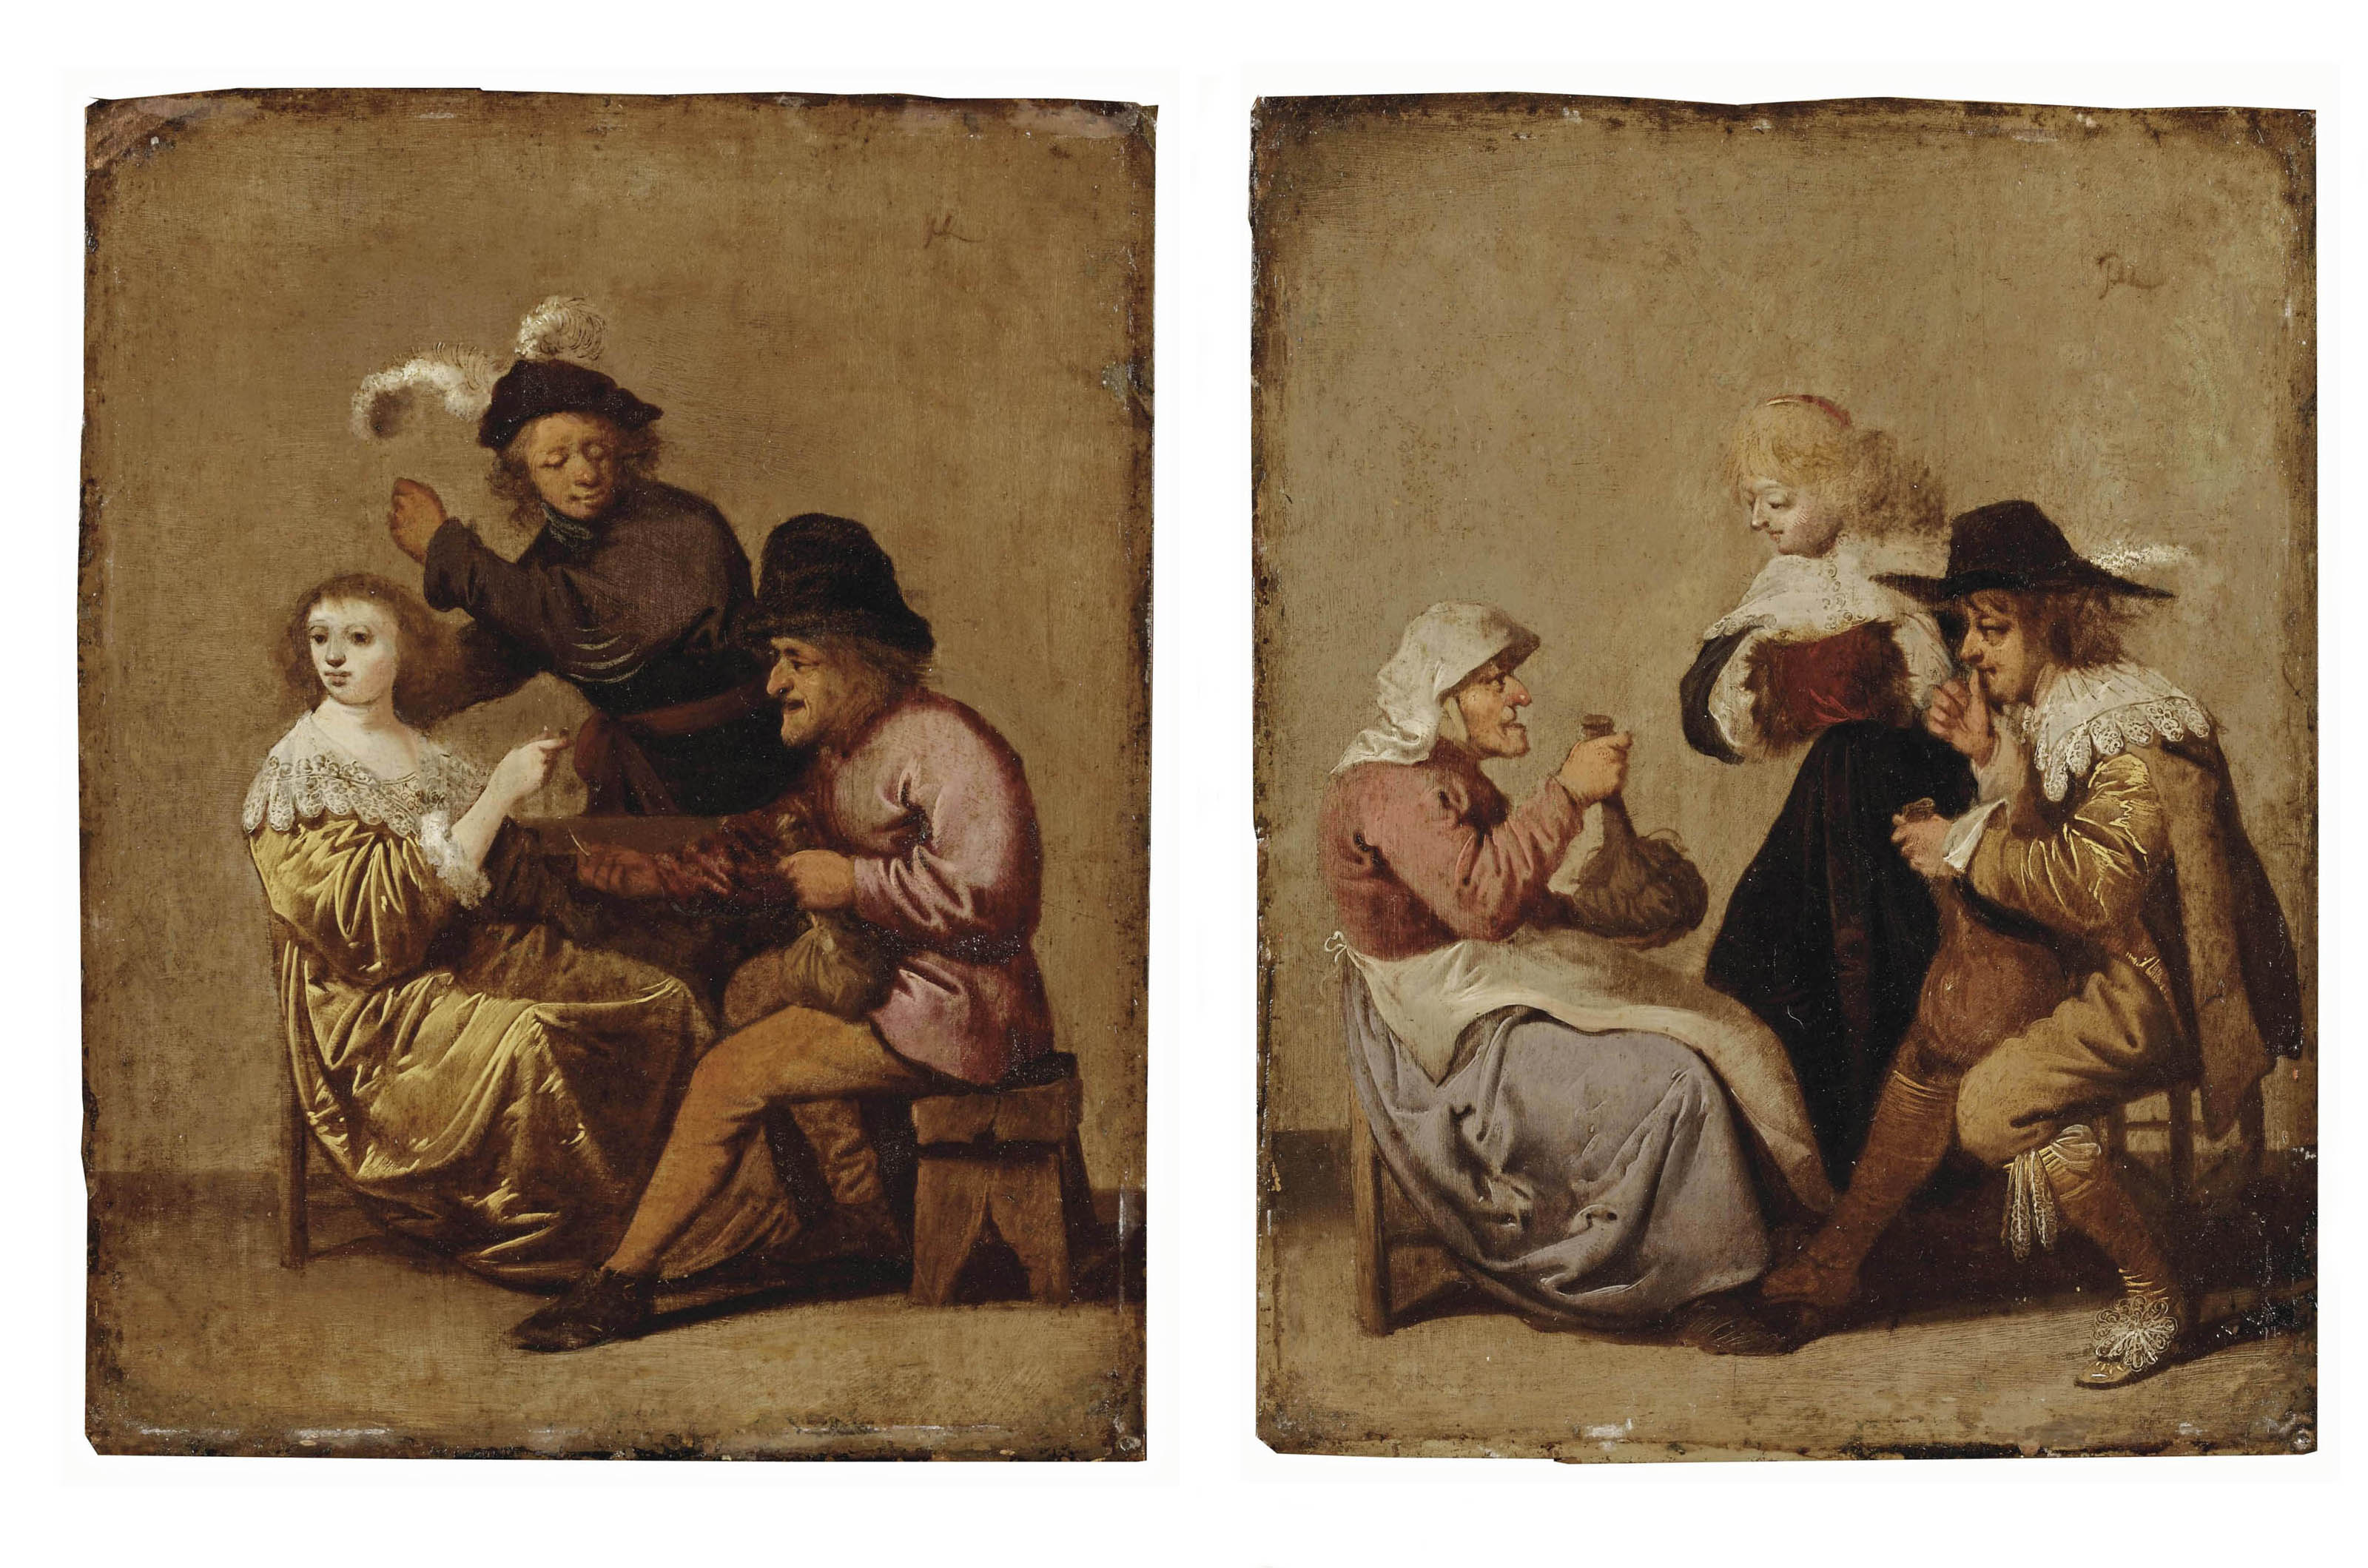 A drinking peasant courting a young lady with an angry young gentleman nearby; and A gentleman drinking with an old woman, a young lady nearby